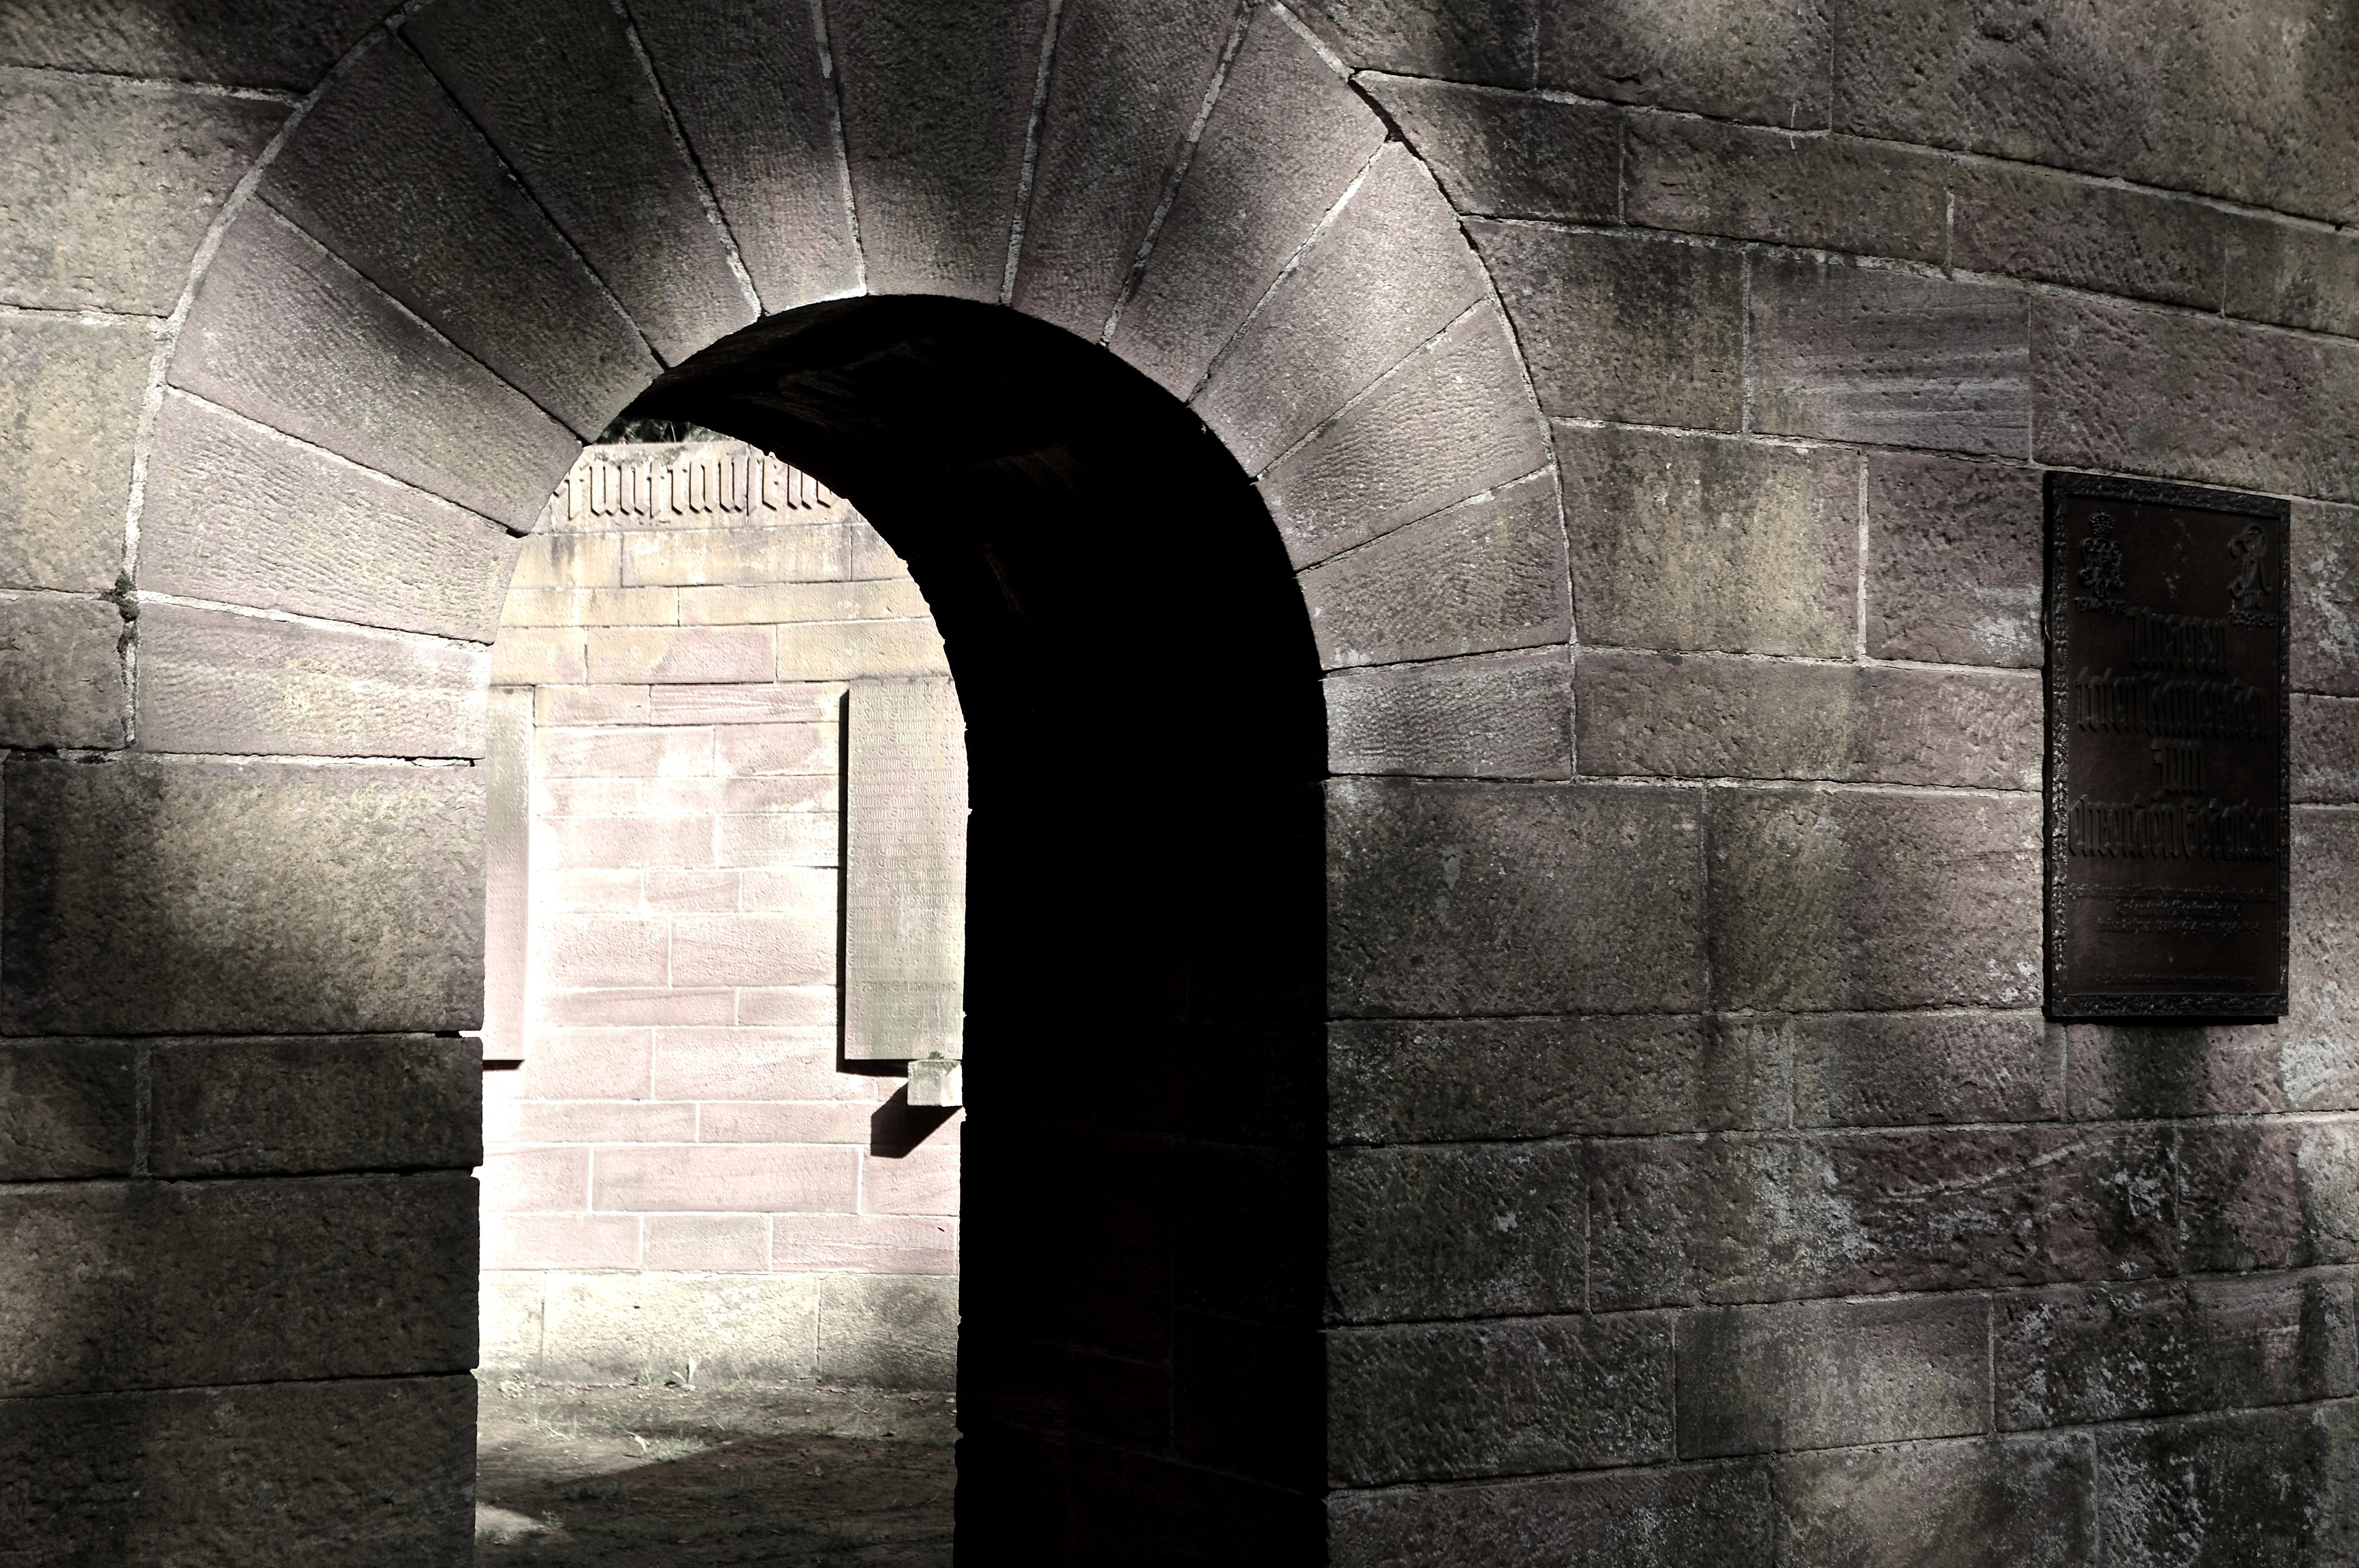 arch, architecture, archway